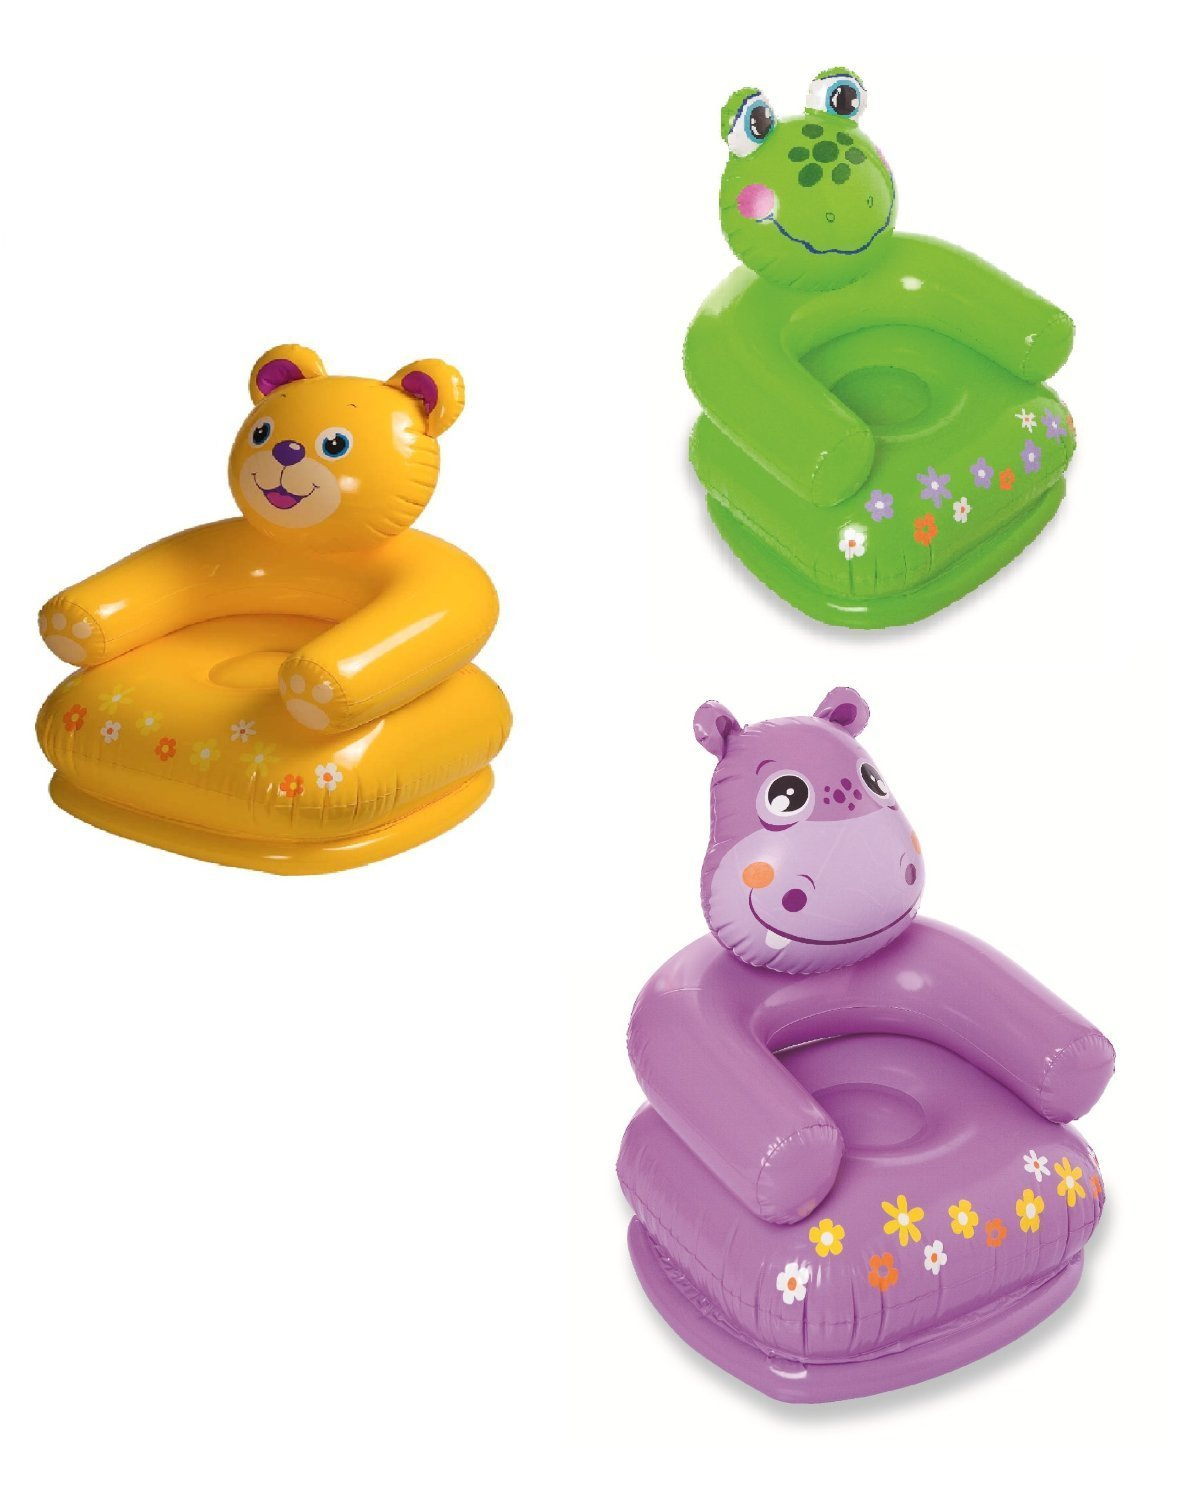 Baby eating chair attached to table - Bear Shape Intex Animal Chair Inflatable Toys